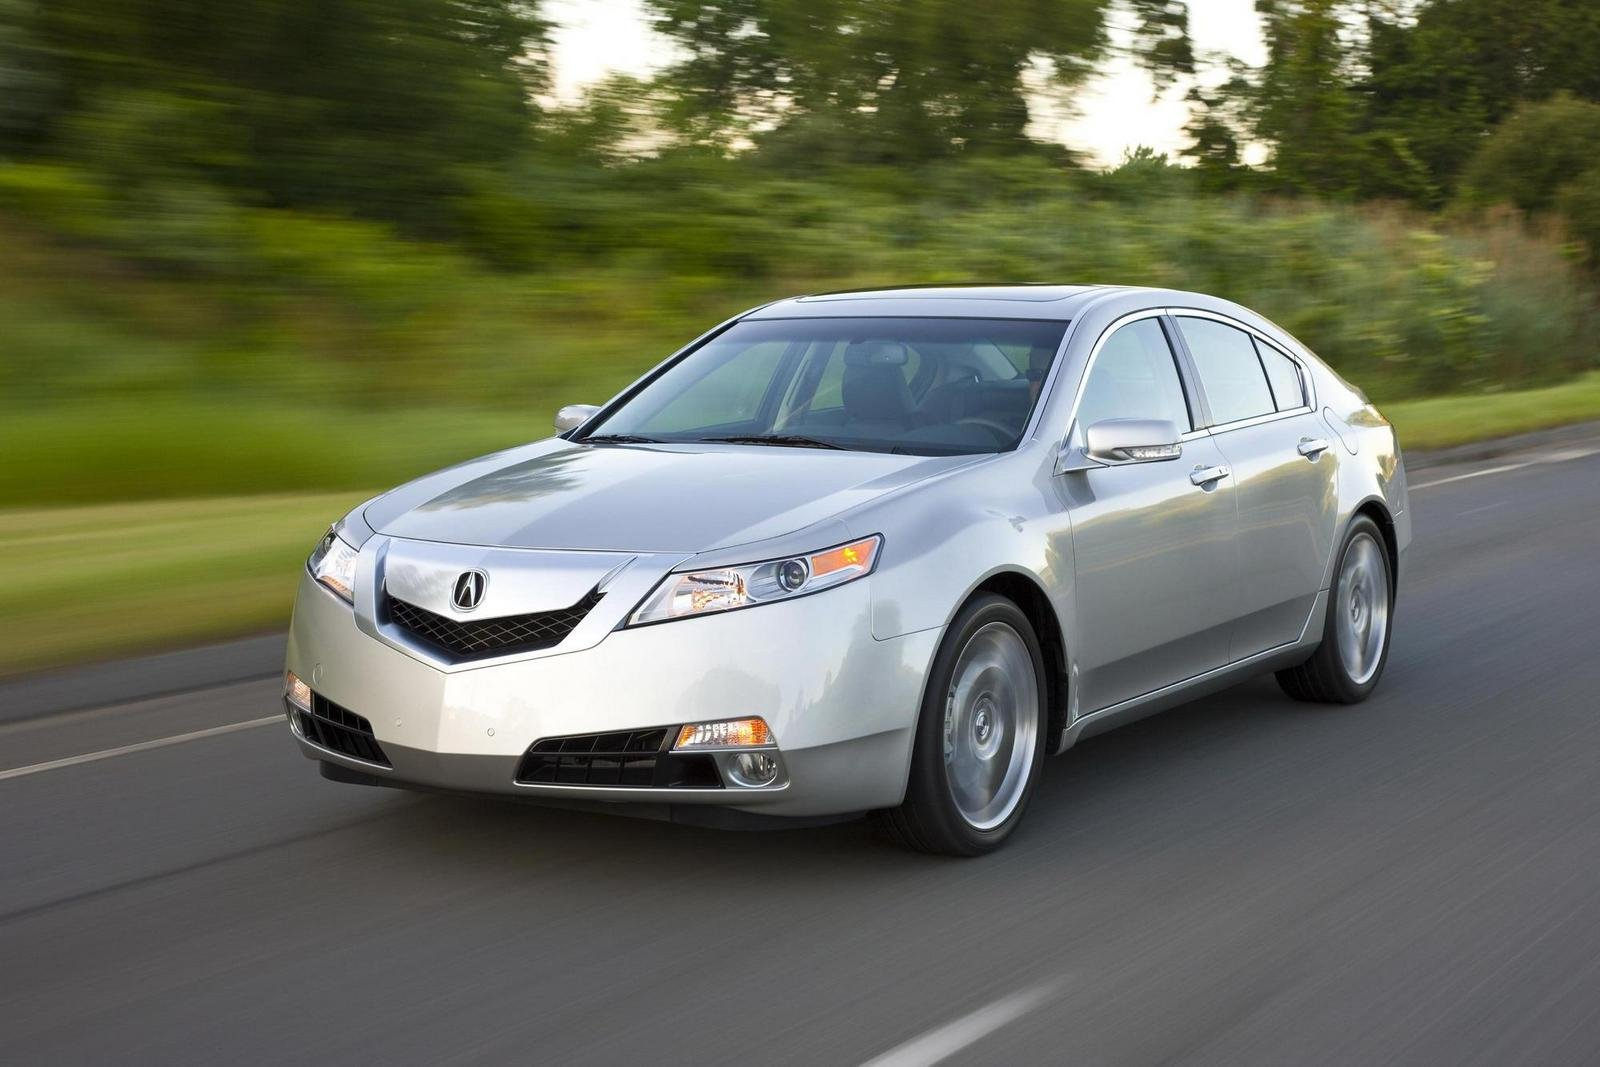 2010 acura tl picture 326181 car review top speed. Black Bedroom Furniture Sets. Home Design Ideas